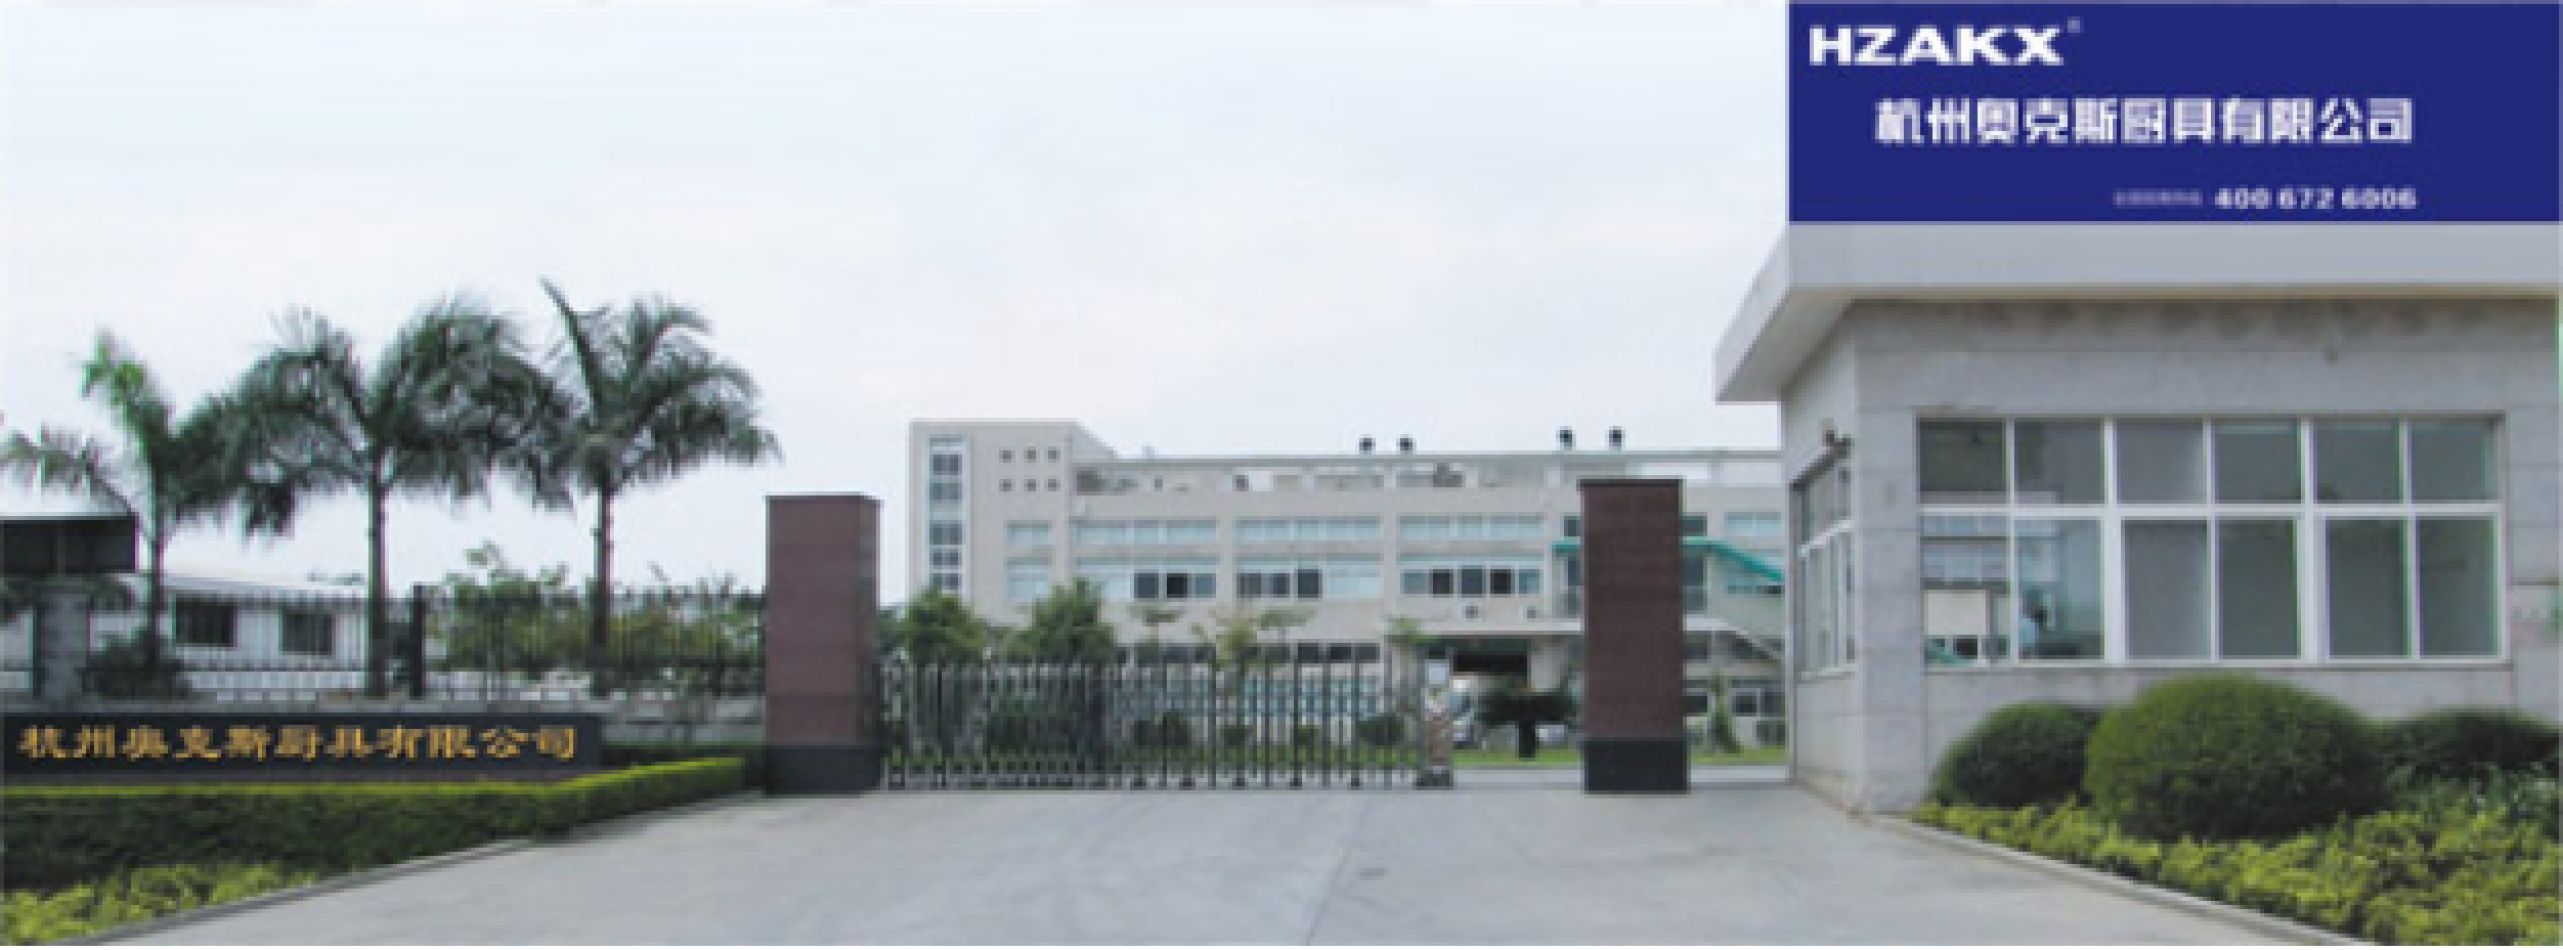 HANGZHOU AN QIAN XIN TEXTILE TRADE CO., LTD.